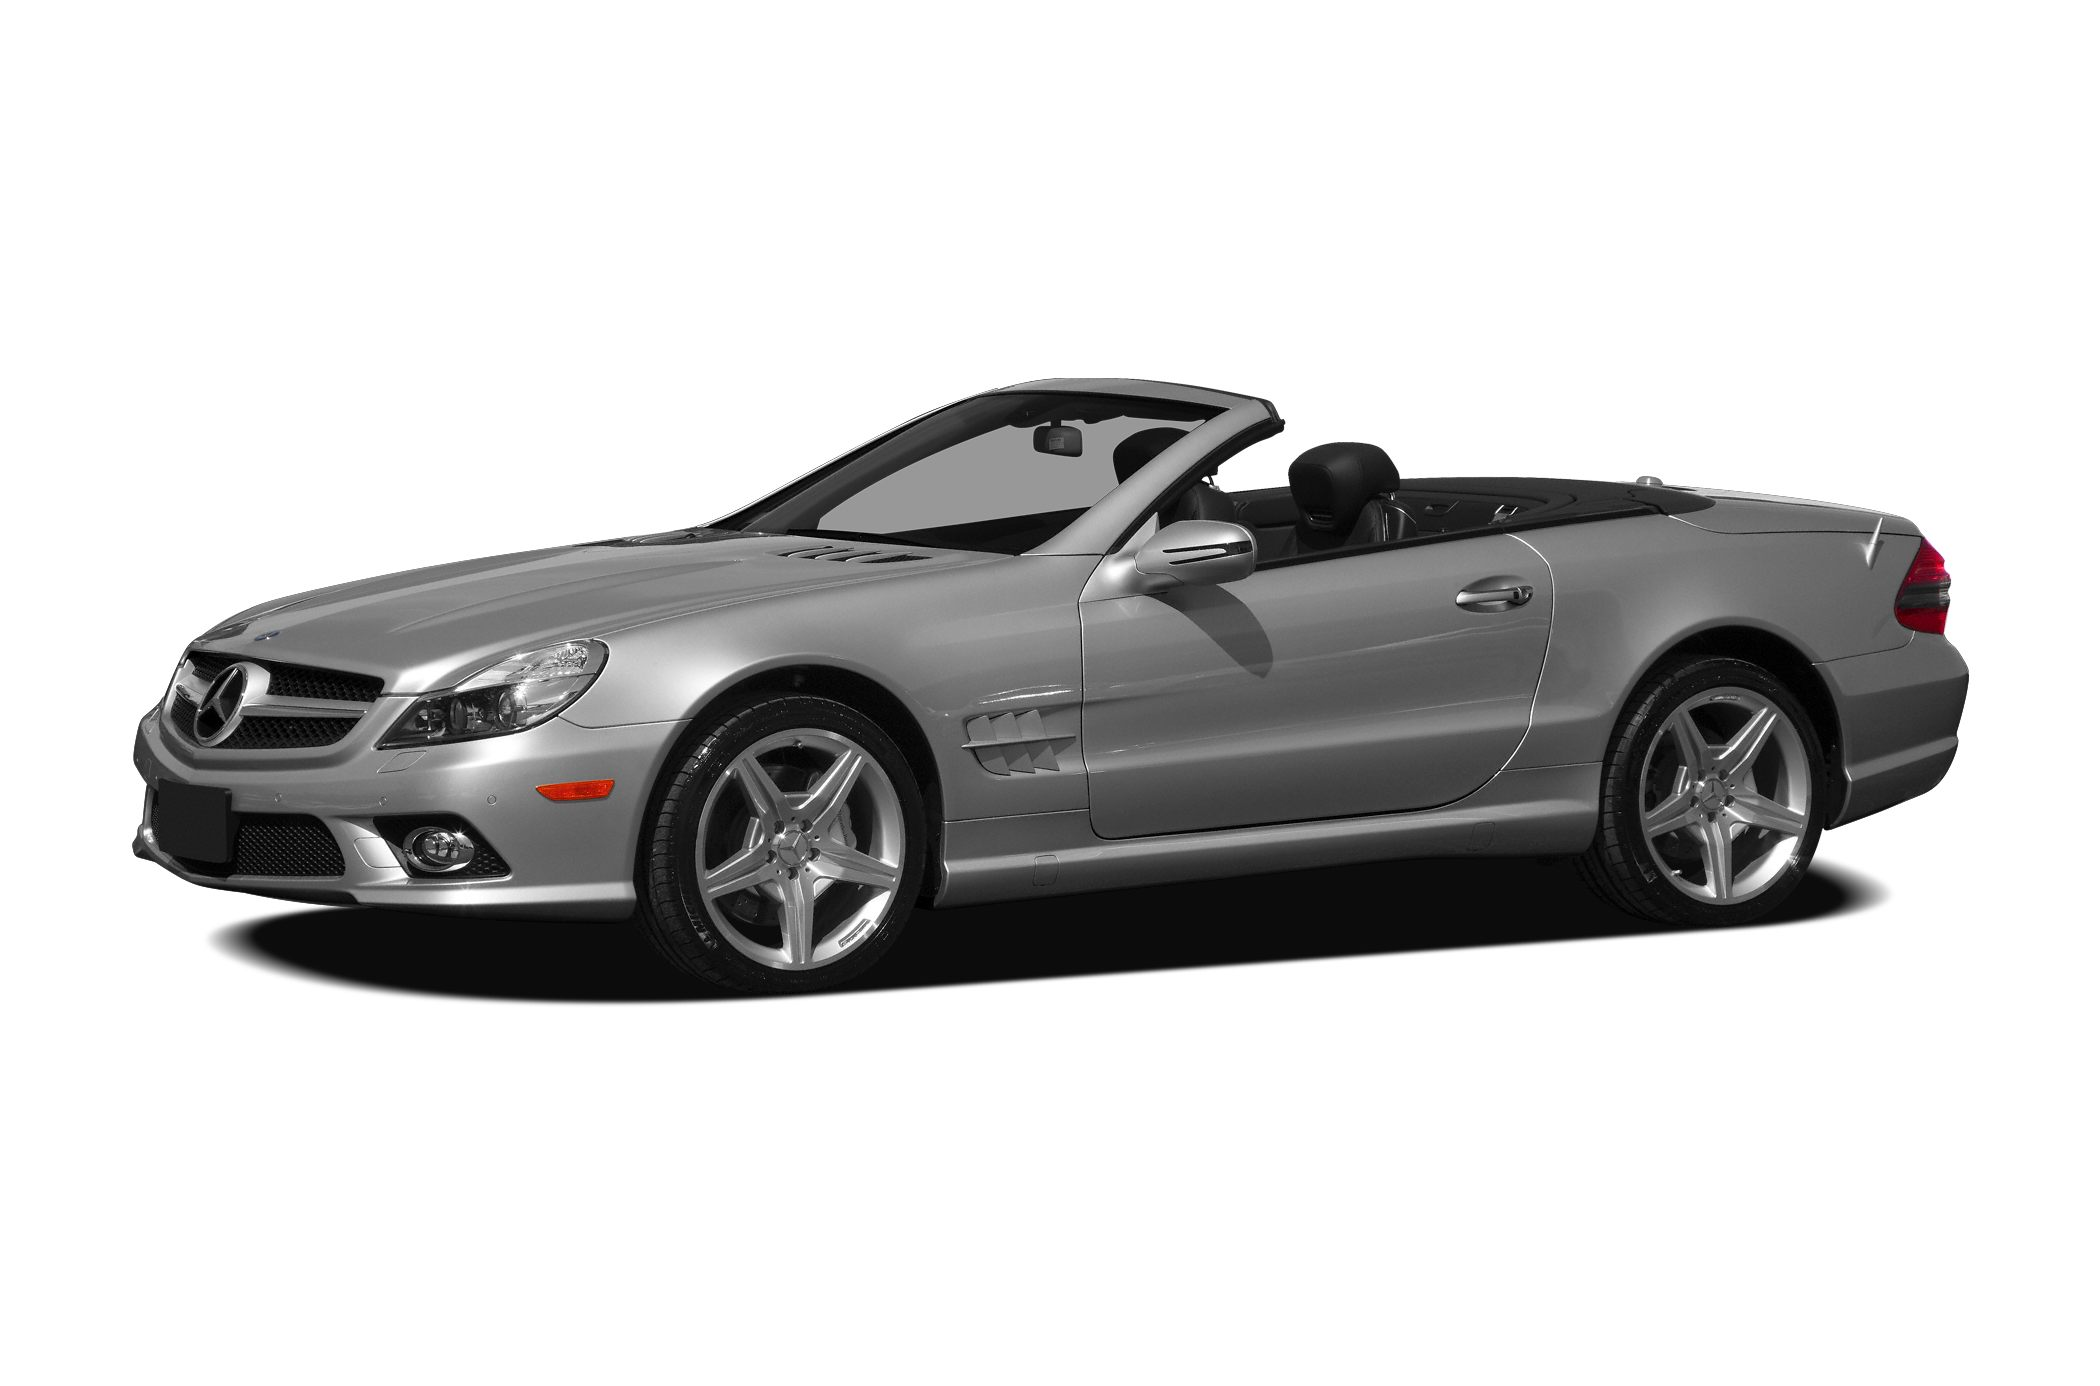 2011 Mercedes-Benz SL-Class SL550 Convertible for sale in Manassas for $44,777 with 55,212 miles.